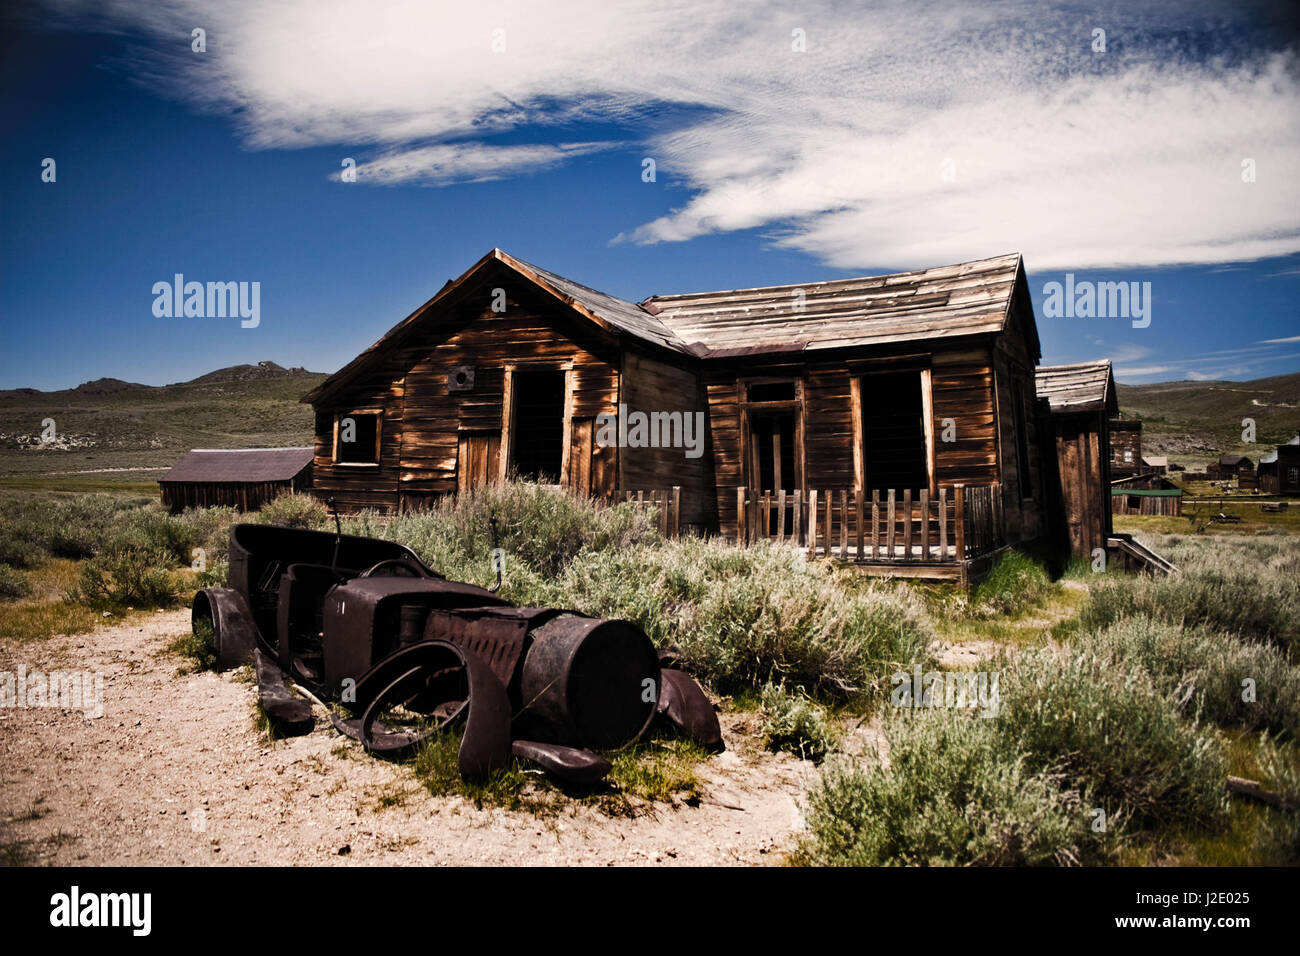 BodieHome3800648462   - Stock Image